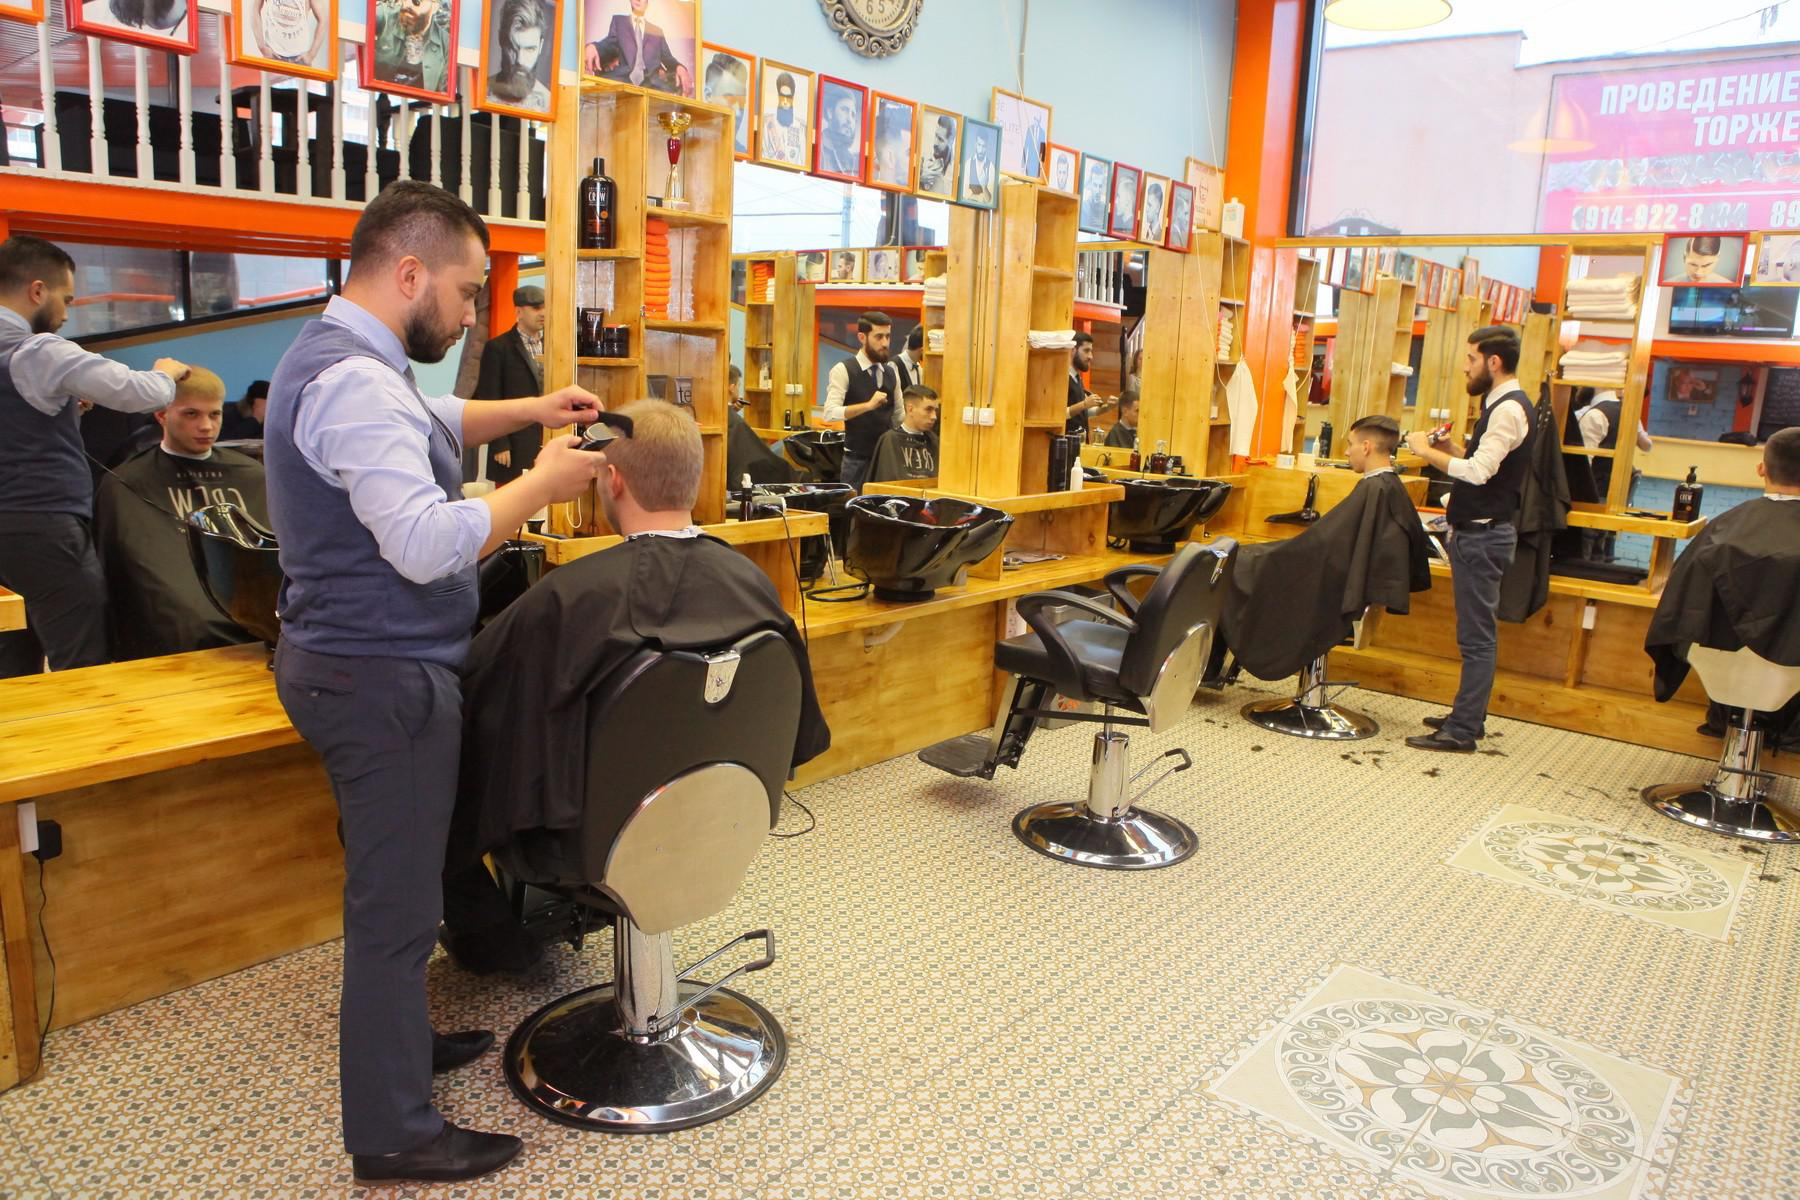 barbershop business plan - barbershop business plan outline.